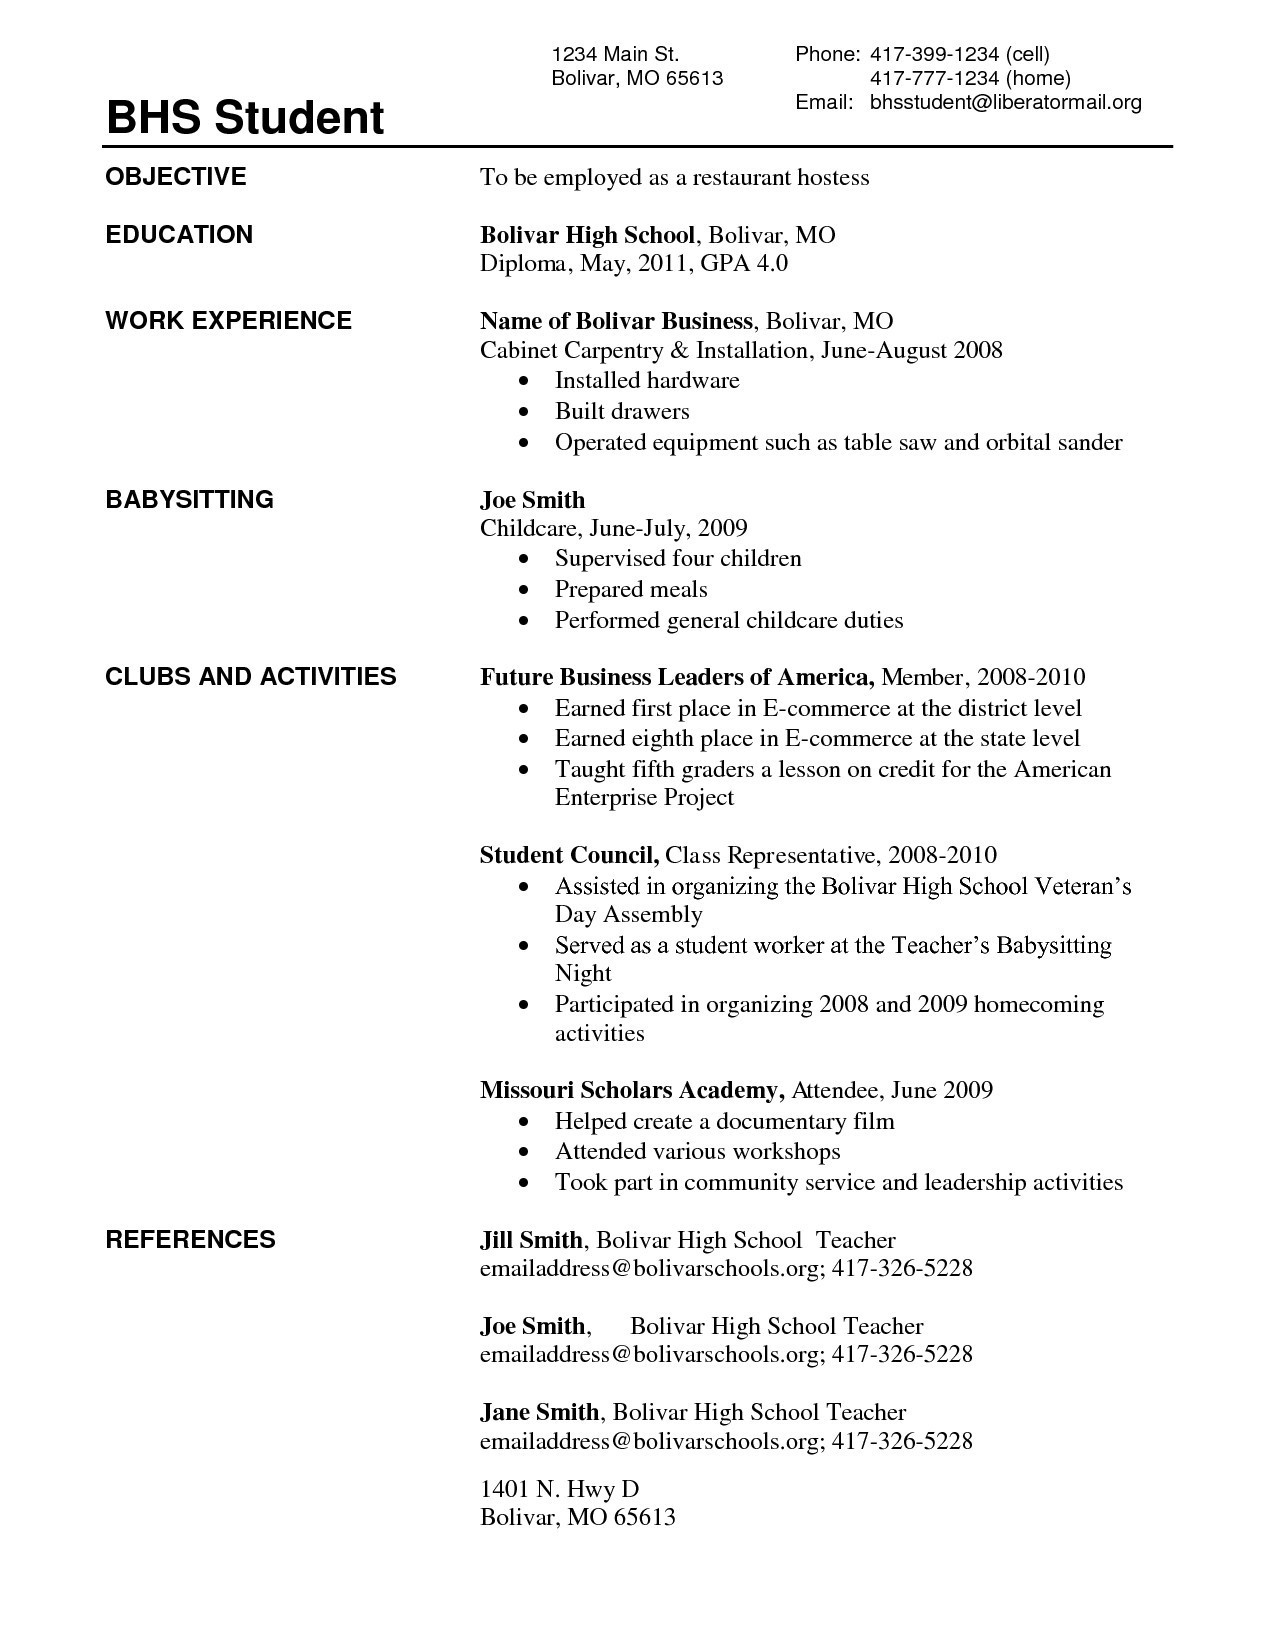 Recent High School Graduate Resume - Fresh Resume Templates for High School Students